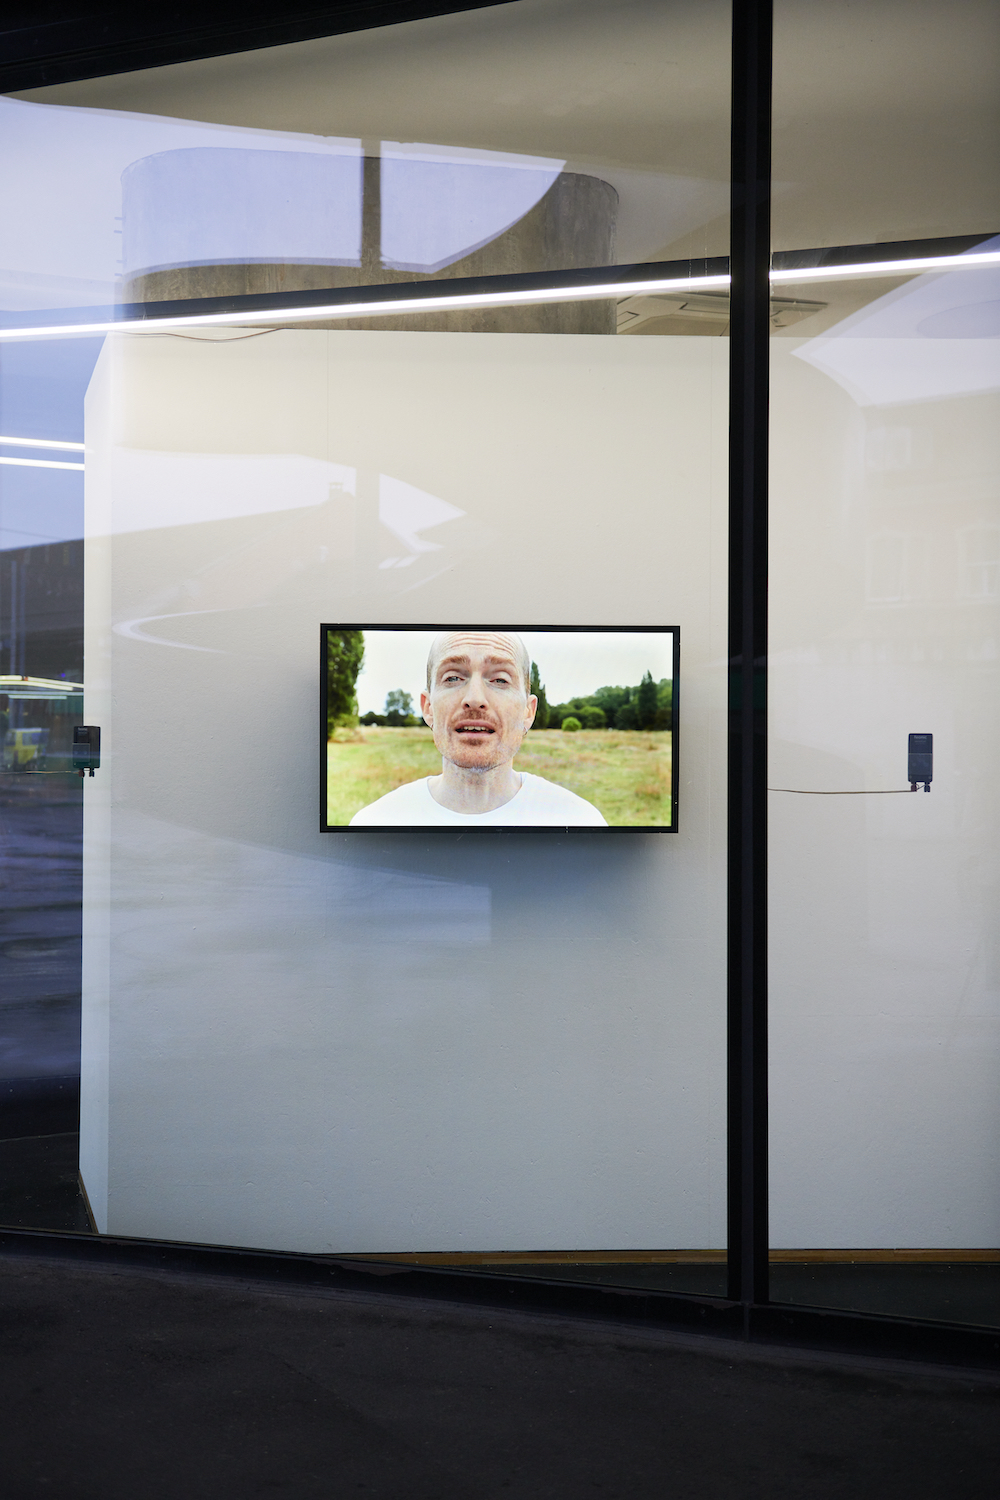 Nicole Bachmann, along the rims, 2020. HD Single Channel Video installed with window speakers. 00:25:00. Photographer: Nici Jost.